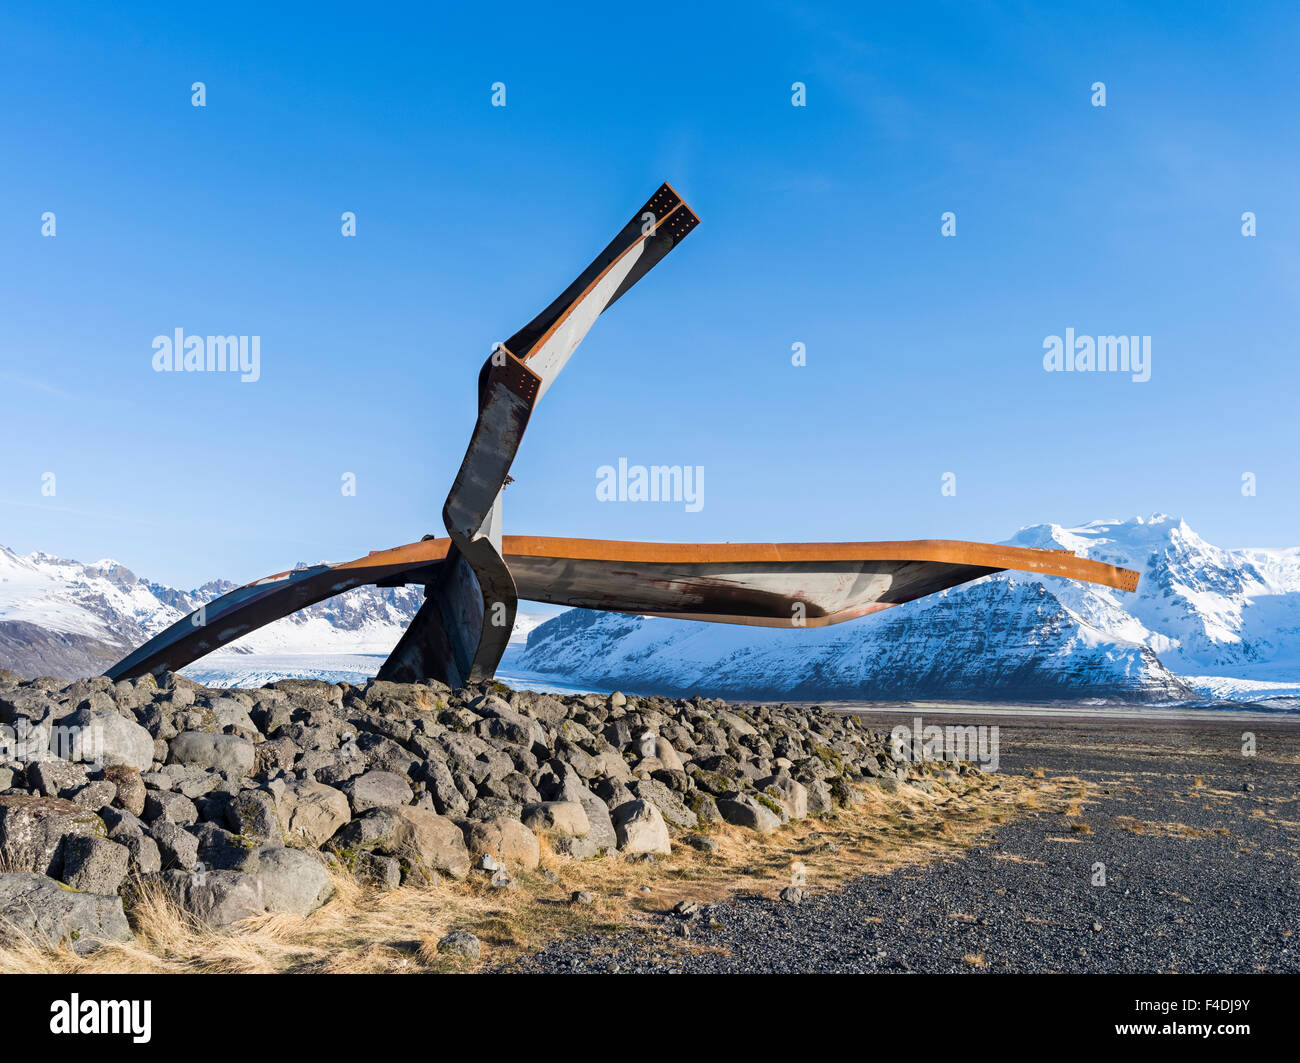 Twisted beams made of steal, a monument commemorating the Jokulhlaup from 1996. The beams where part of the bridge - Stock Image